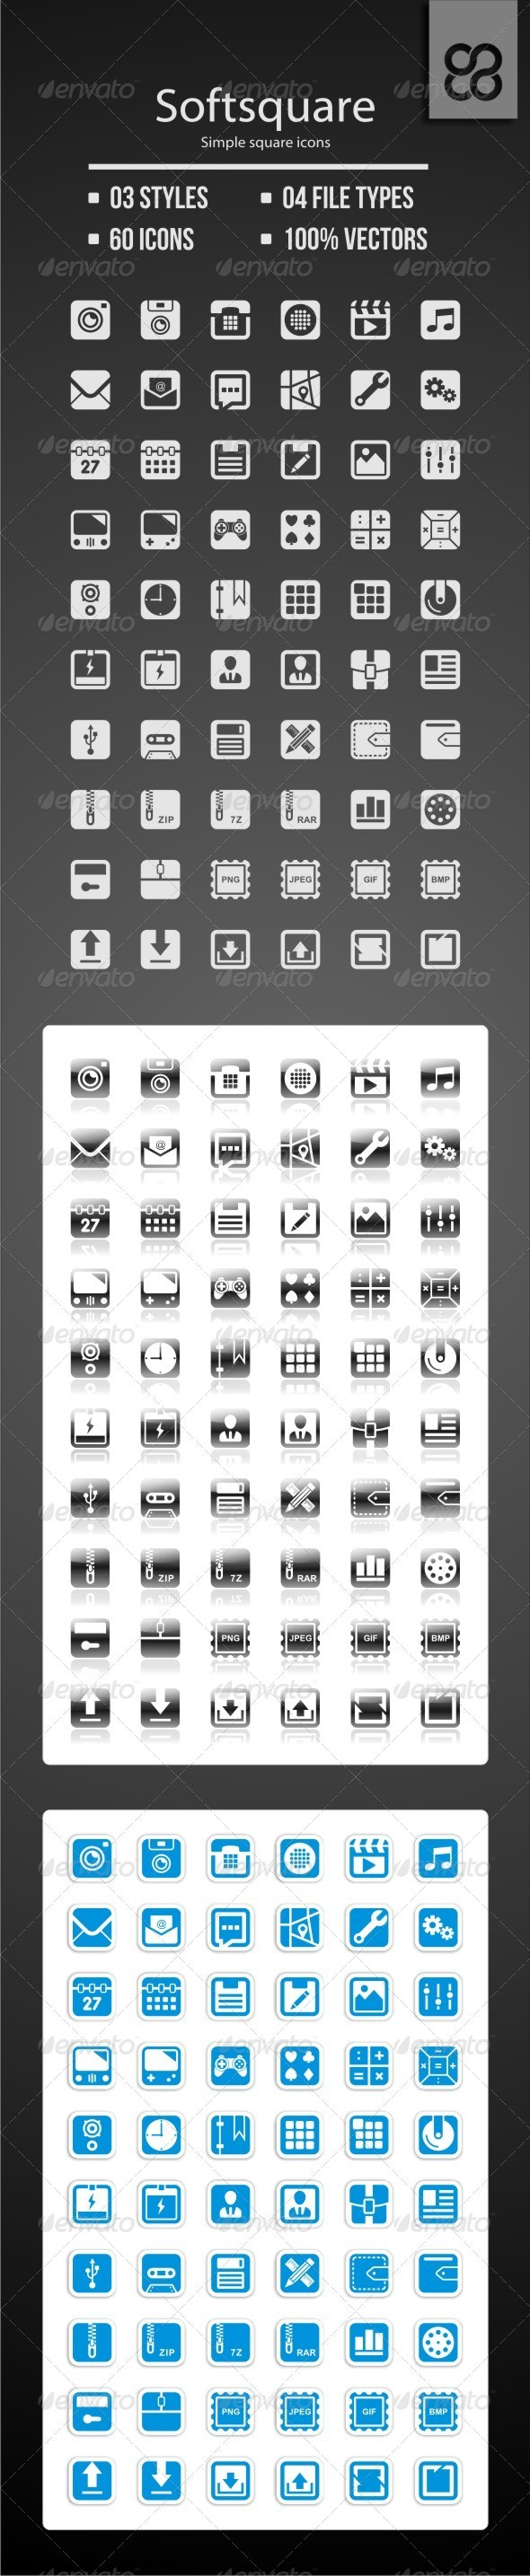 Softsquare - Simple Square Icons - Web Icons